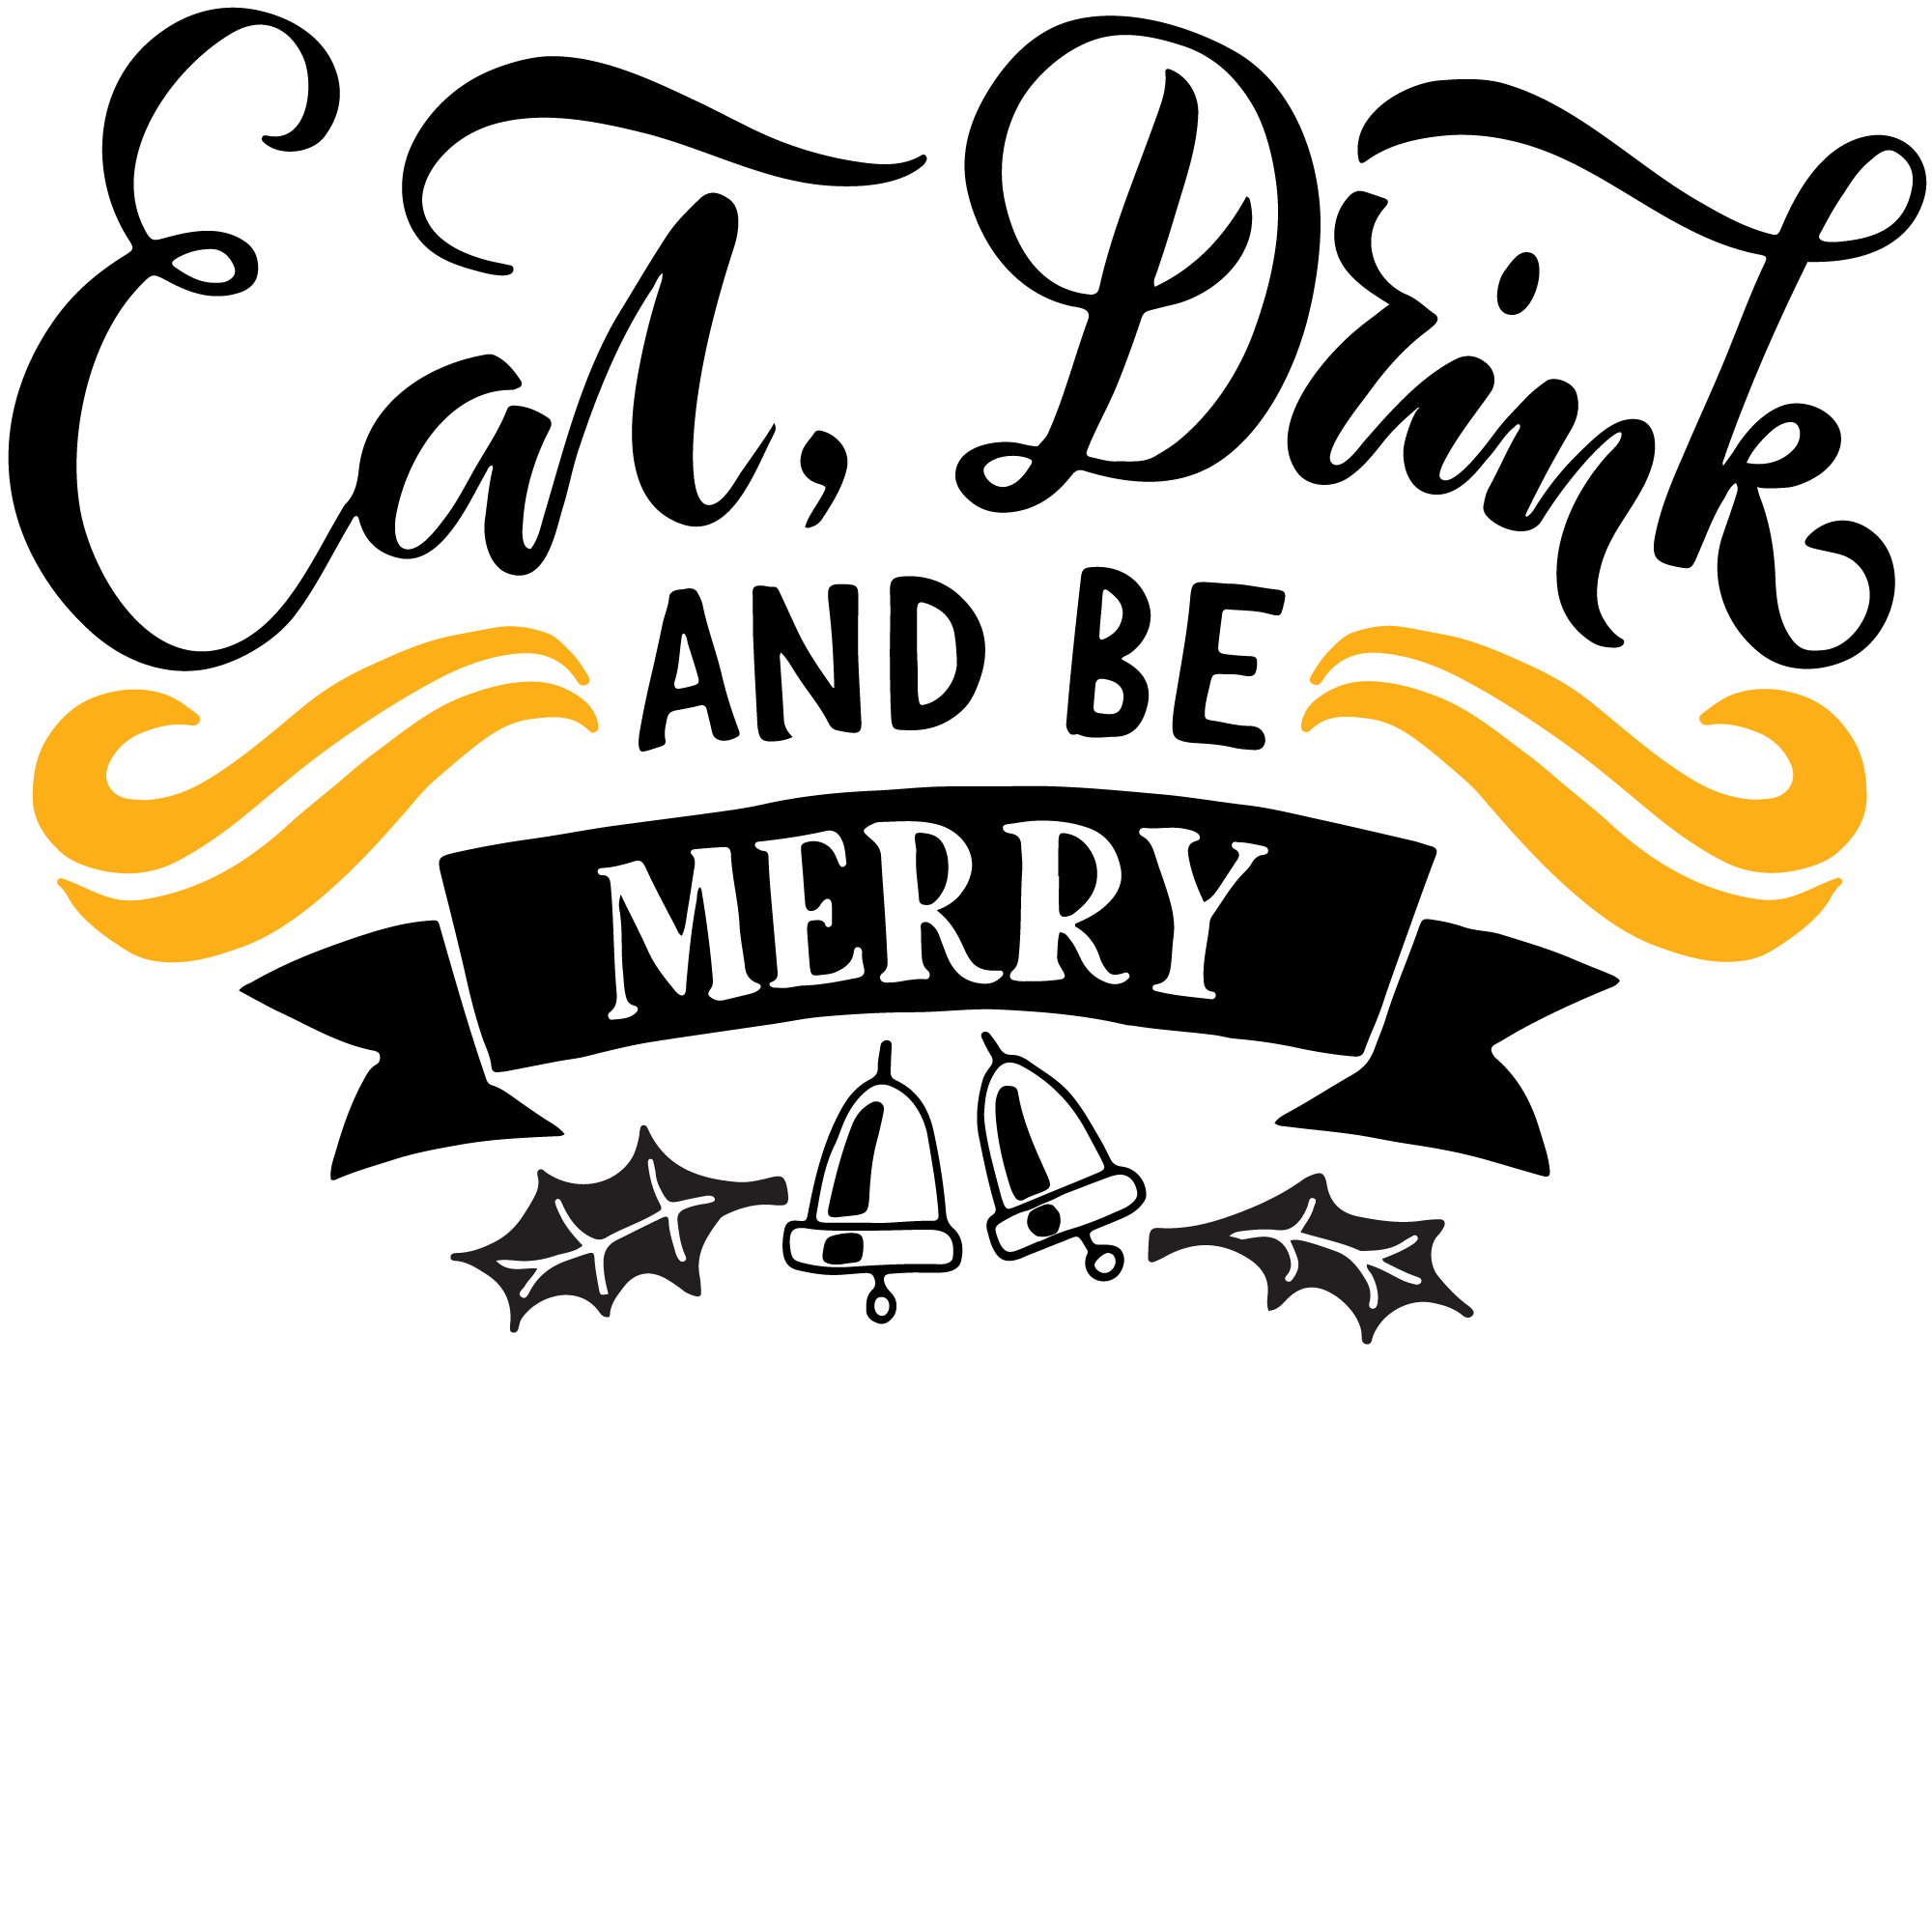 vector transparent stock Eat and be discover. Merry clipart drink.